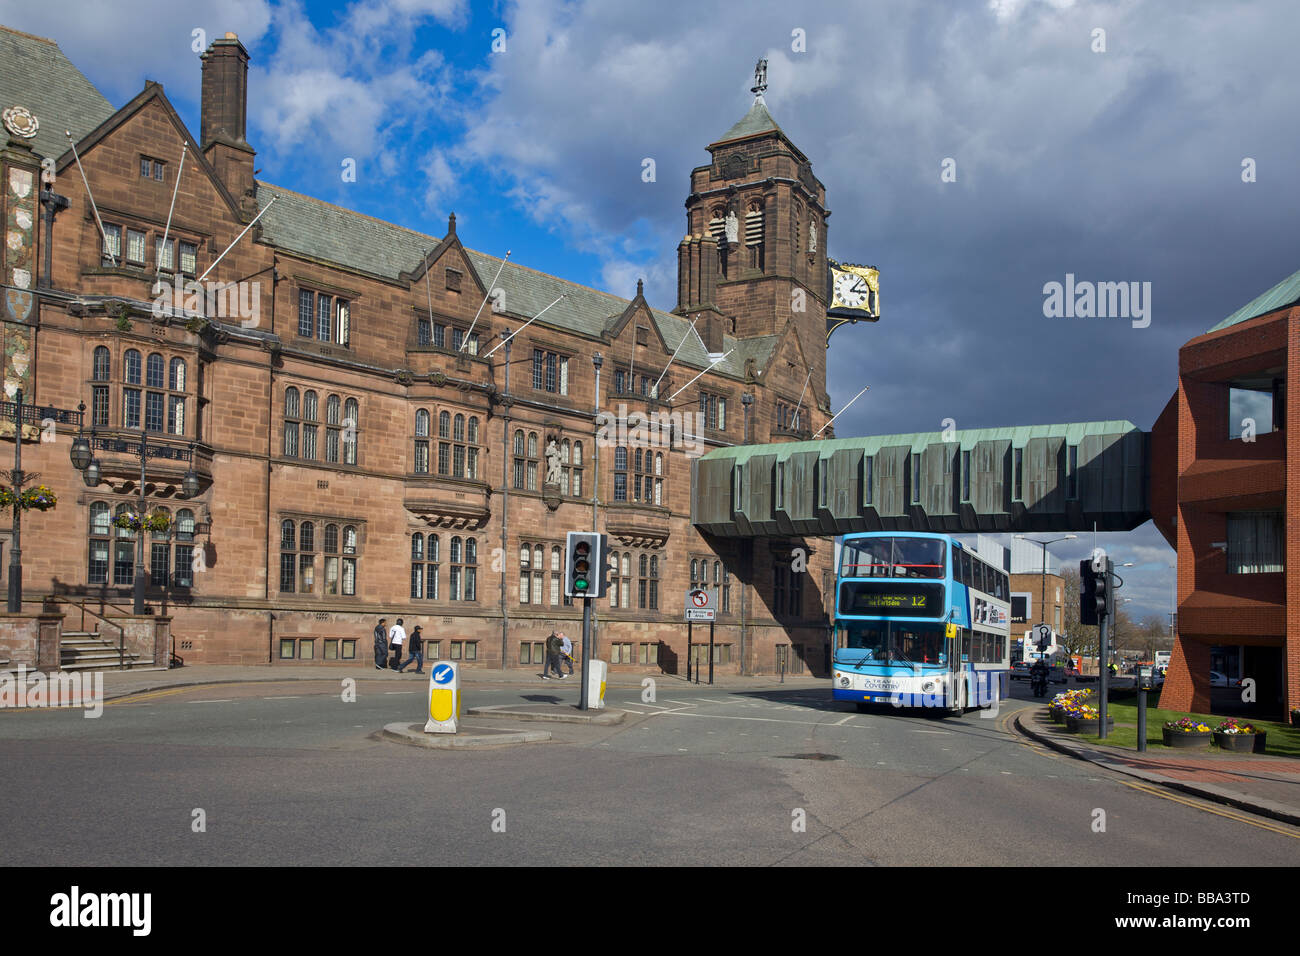 Double decker bus passing The Coventry City Council House in Coventry, West Midlands of England, United Kingdom Stock Photo